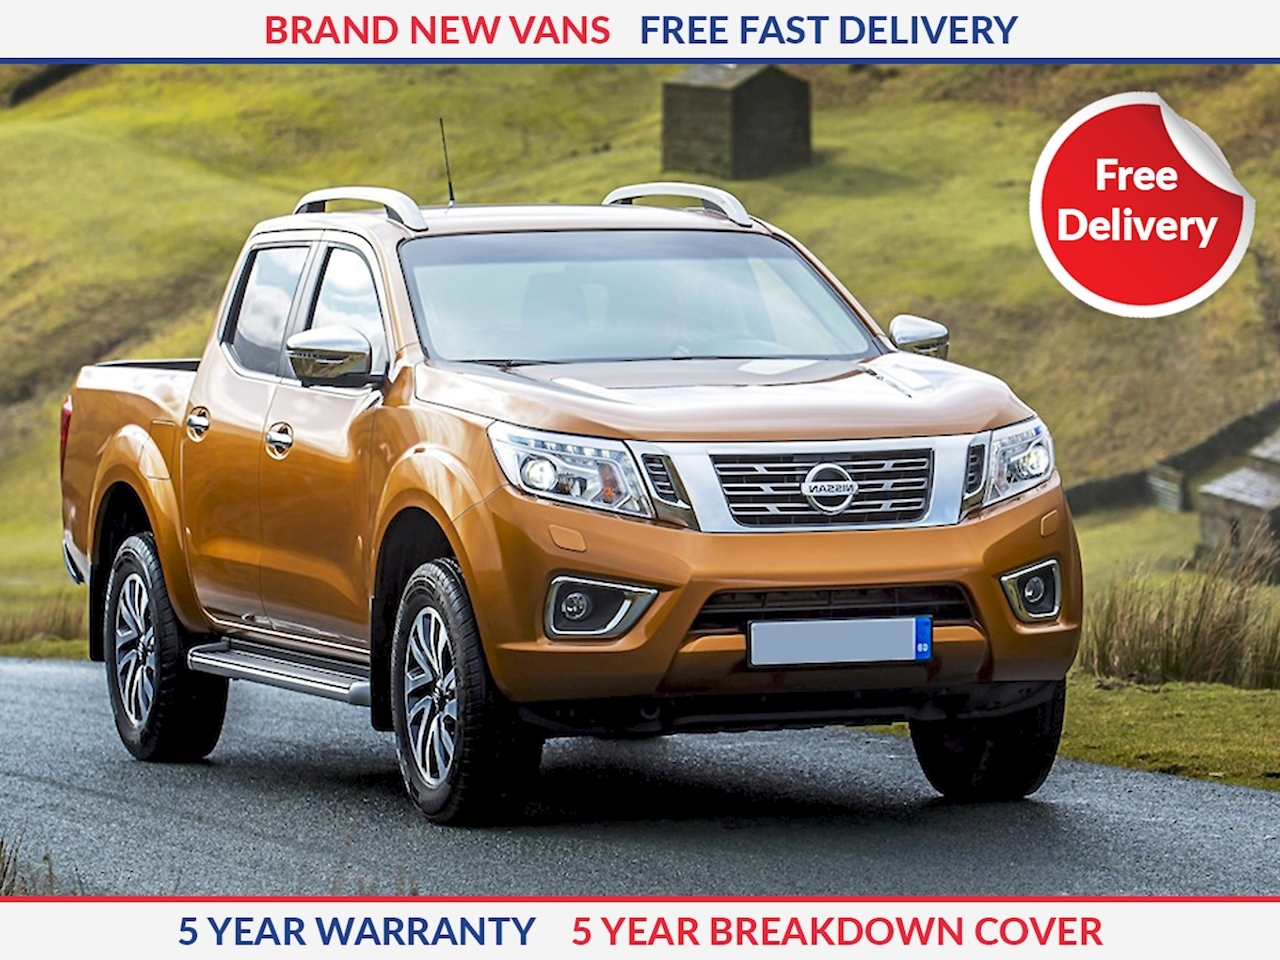 Nissan Navara N-Connecta Double Cab 2.3 dCi Twin Turbo 190ps 4WD 4x4 Automatic